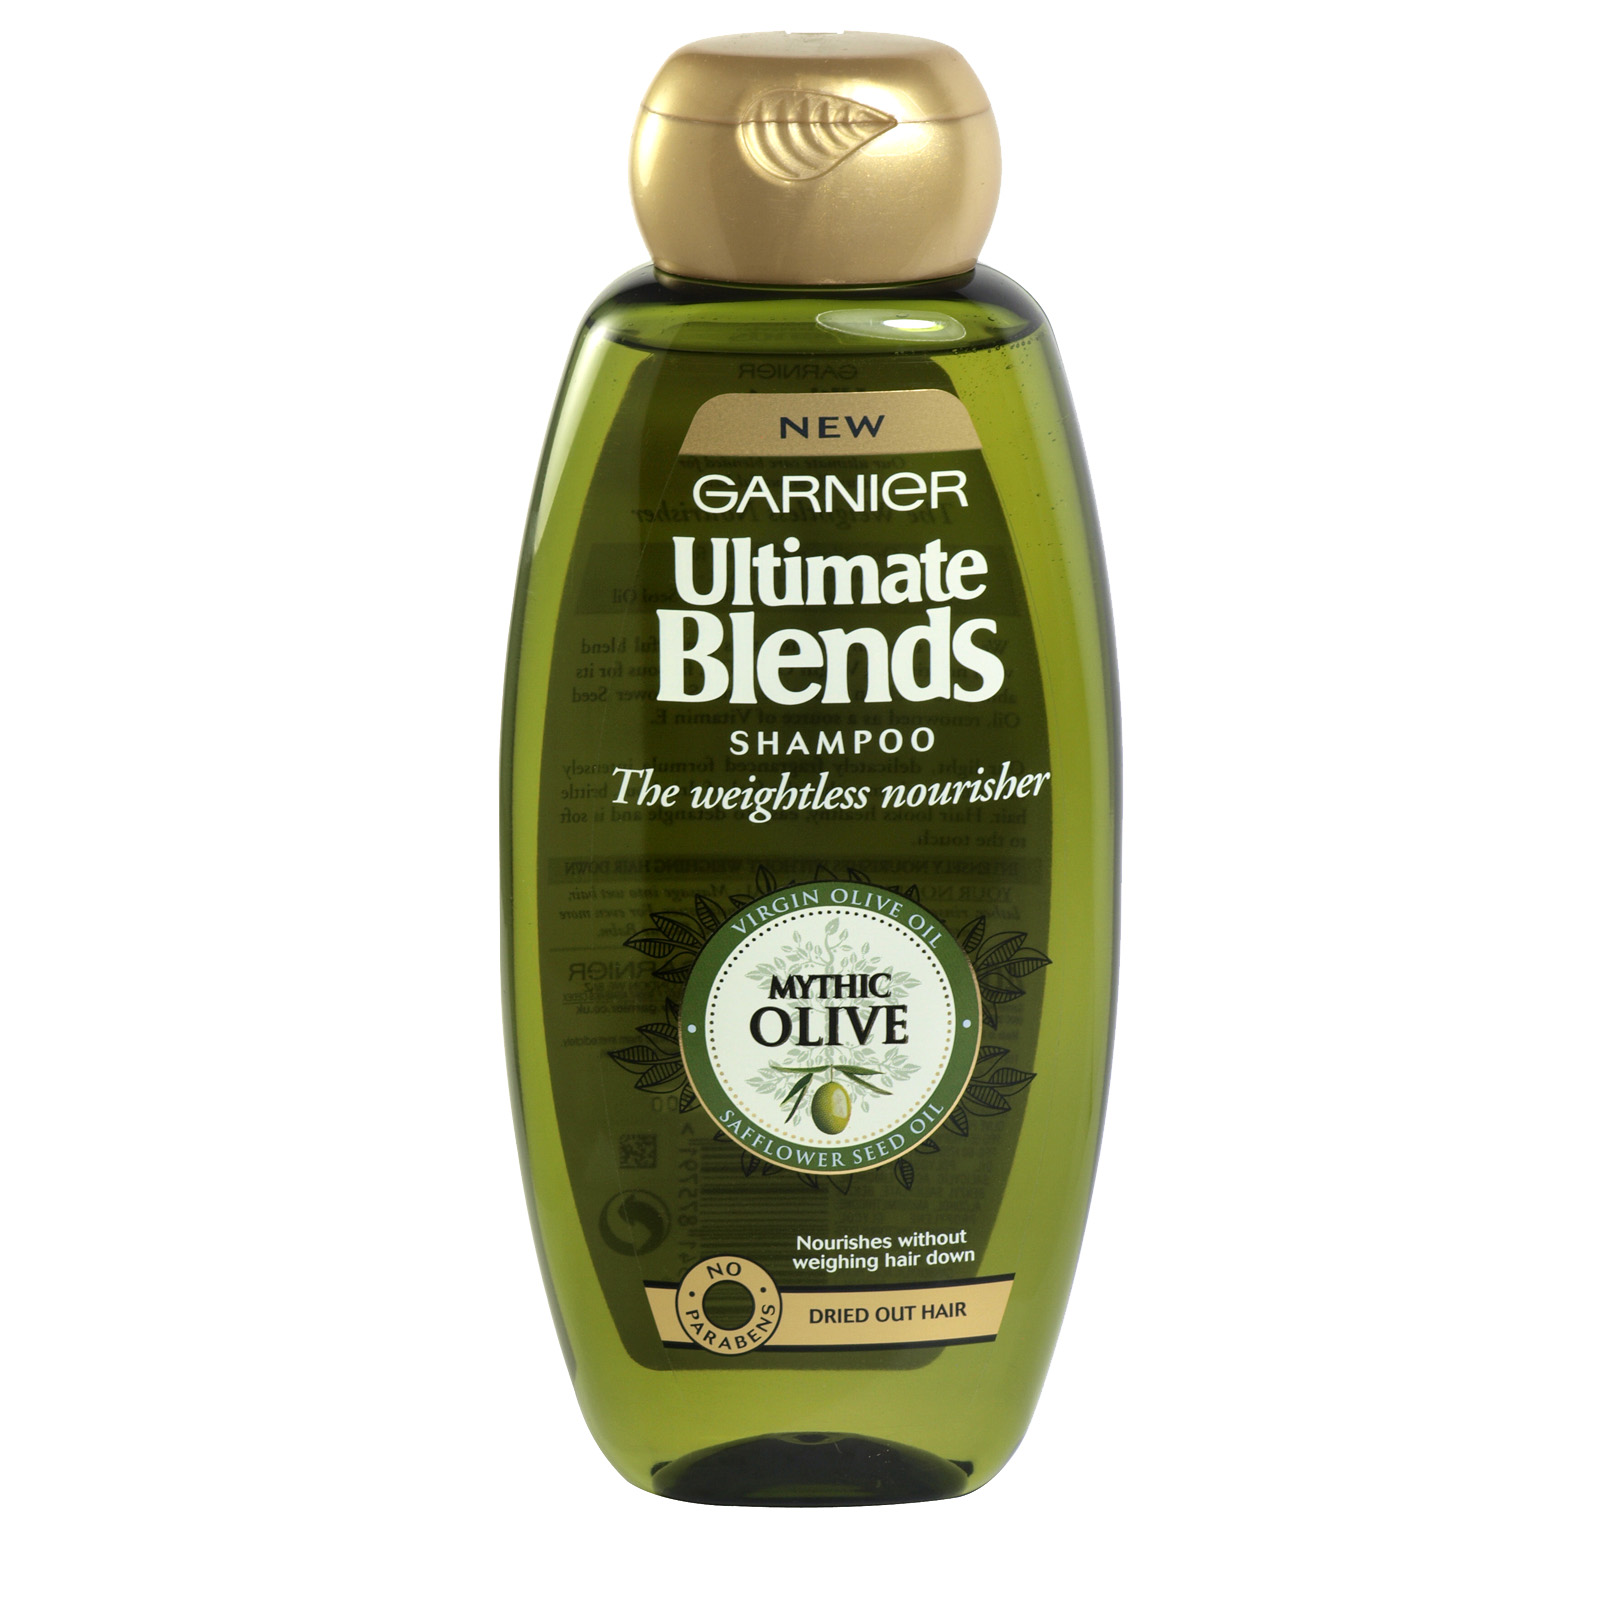 GARNIER ULTIMATE BLENDS 400ML S/POO MYTHIC OLIVE NOURISHING REPAIR X6